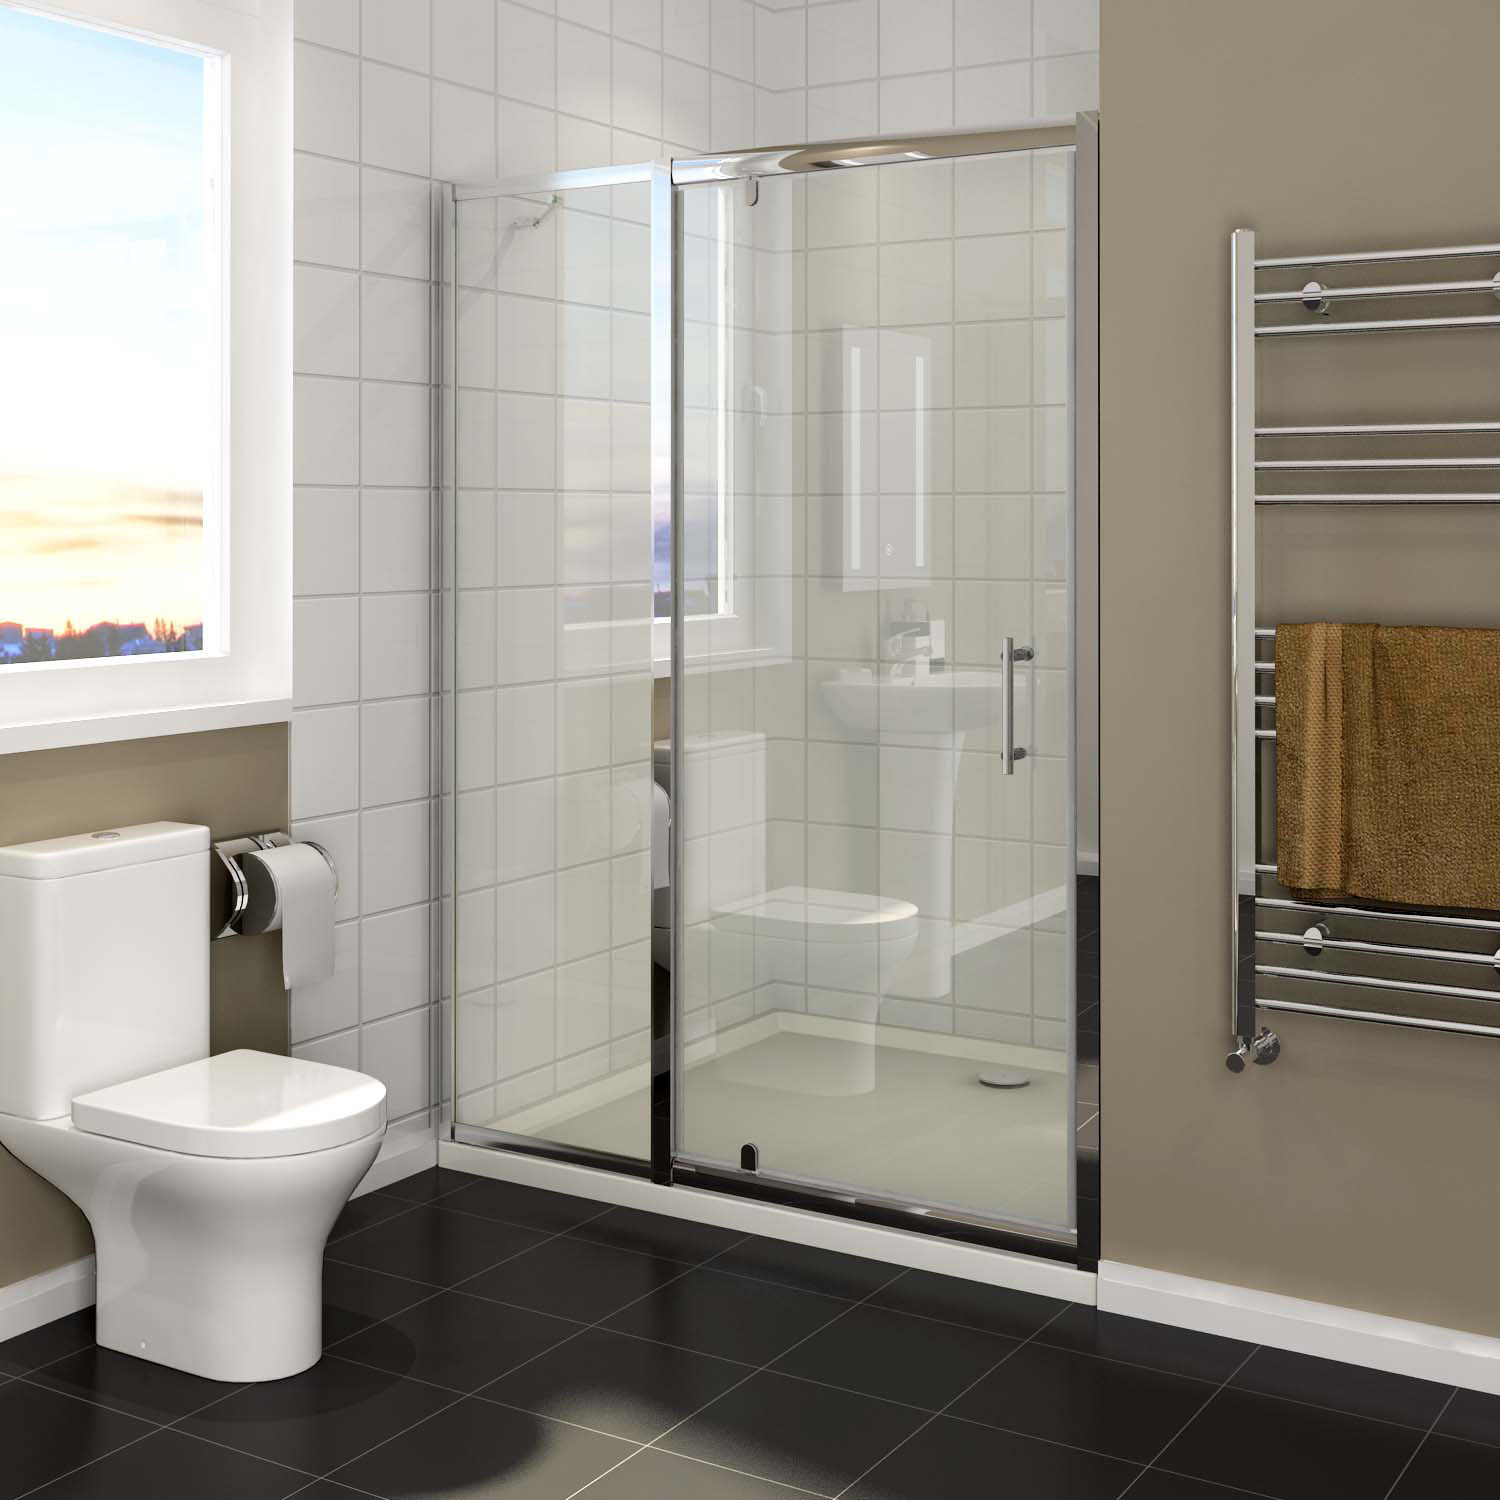 Details About Pivot Door Wall To Wall Shower Screen Bottom Seals Extended Panel 110x190cm